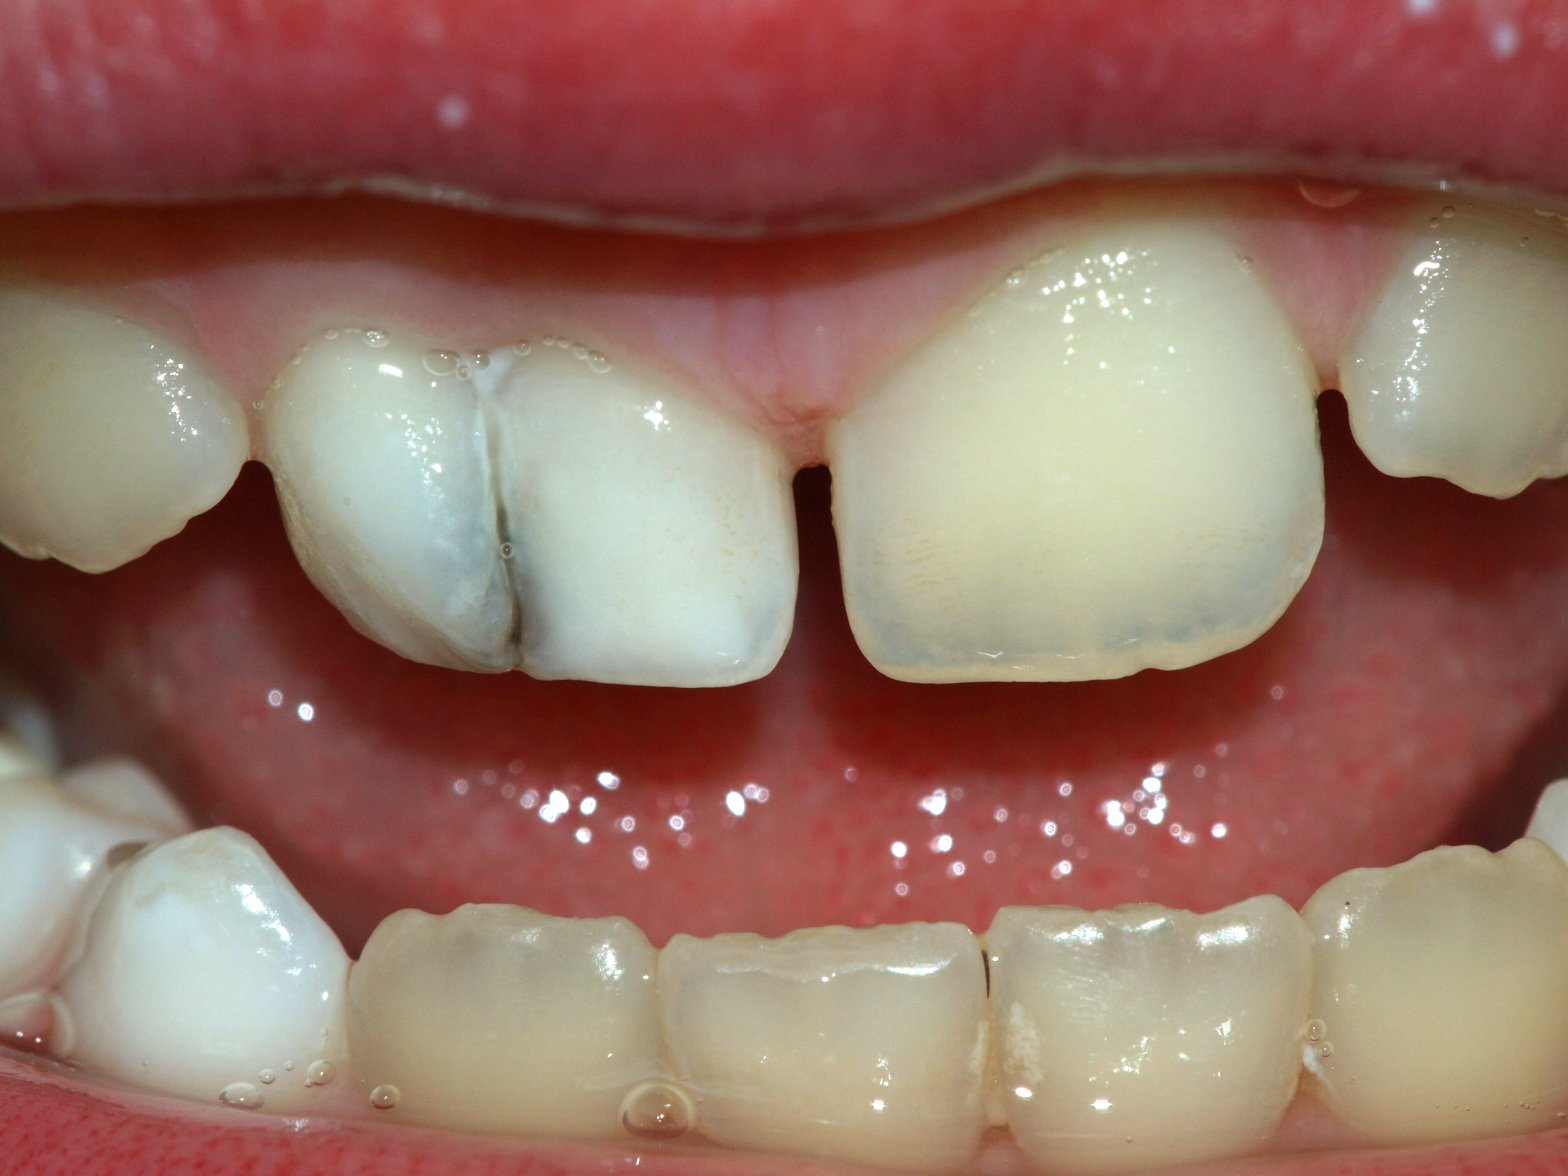 File:Milk.teeth.fusion.jpg - Wikipedia, the free encyclopedia